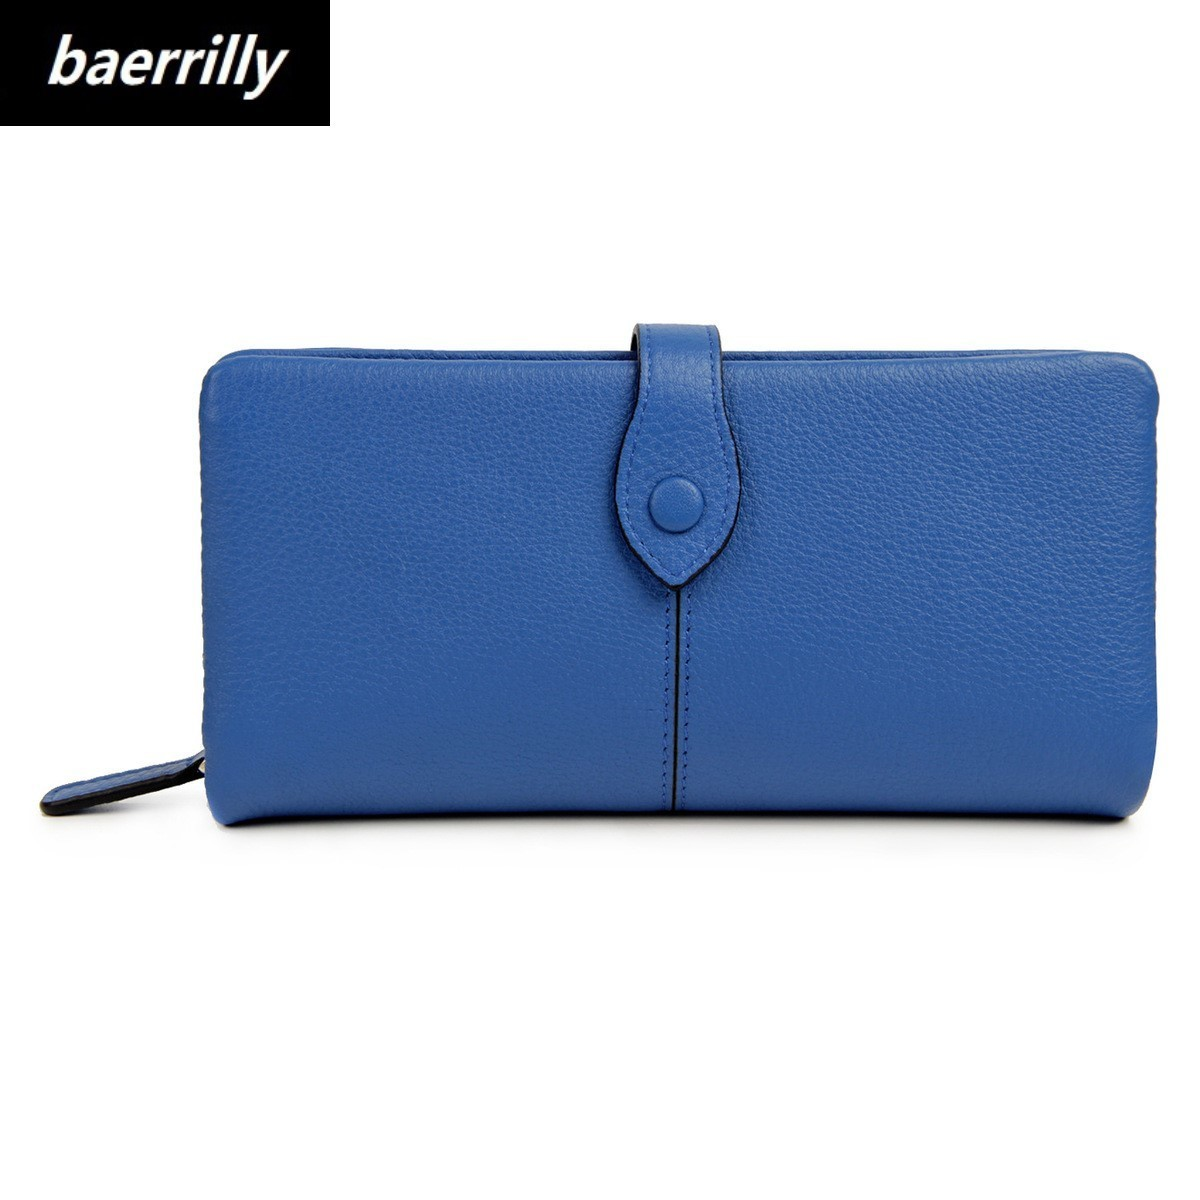 Fashion Solid Genuine Leather Women Wallet Coin Pocket Credit ID Card Holder Female Purse Money Bag Cell Phone Pocket Day clutch dispalang cool animal pattern zipper coin purse for cell phone credit card money key wolf print coin wallet bag mini women bags